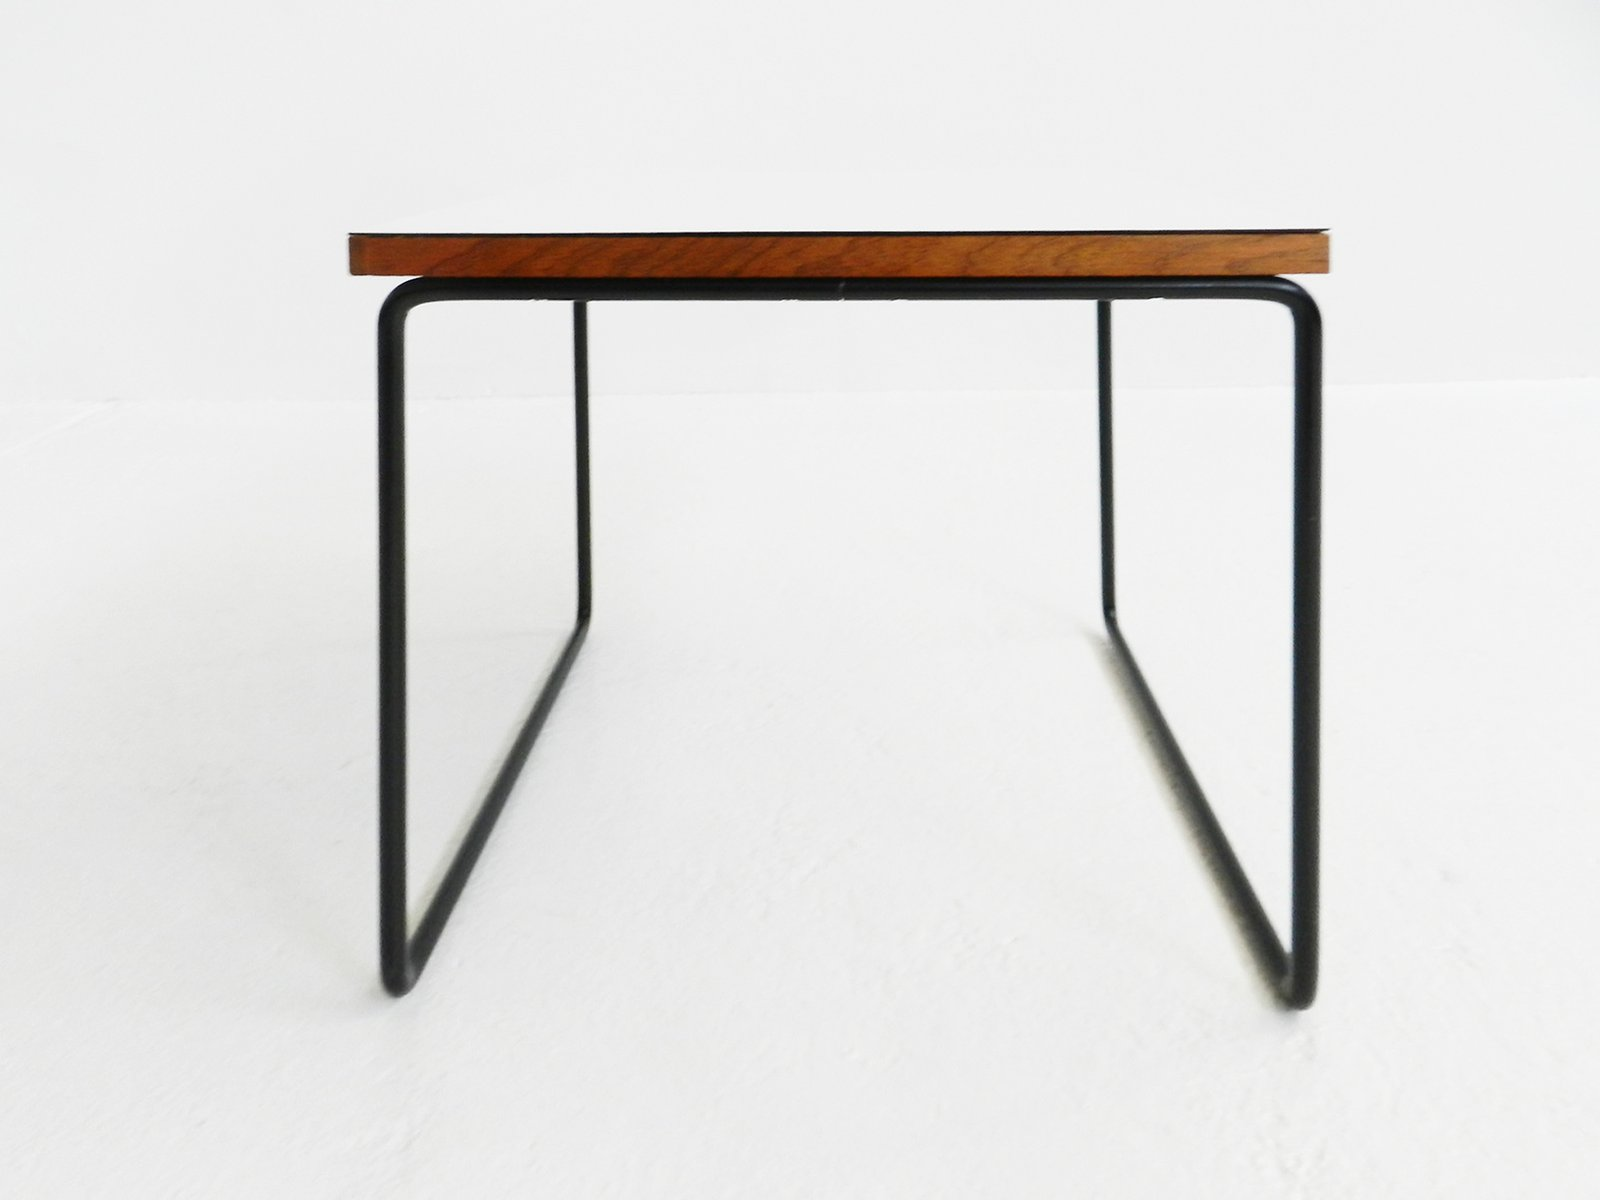 Side Table by Pierre Guariche for Steiner 1950s for sale at Pamono